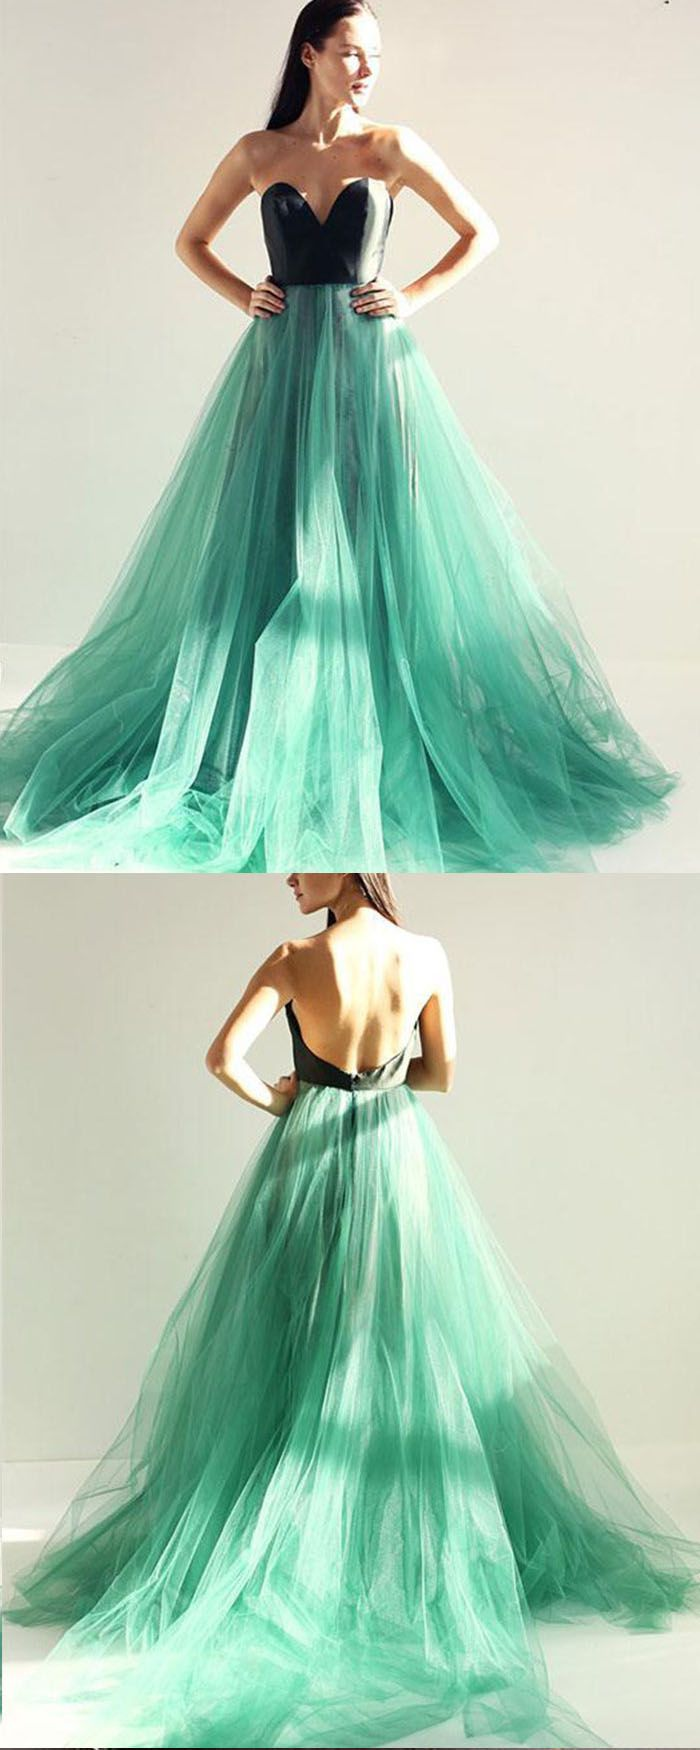 Sweetheart Black And Green Tulle Long Prom Dress With Open Back Pm1399 Prom Dresses For Teens Mint Green Prom Dress Green Prom Dress [ 1750 x 700 Pixel ]